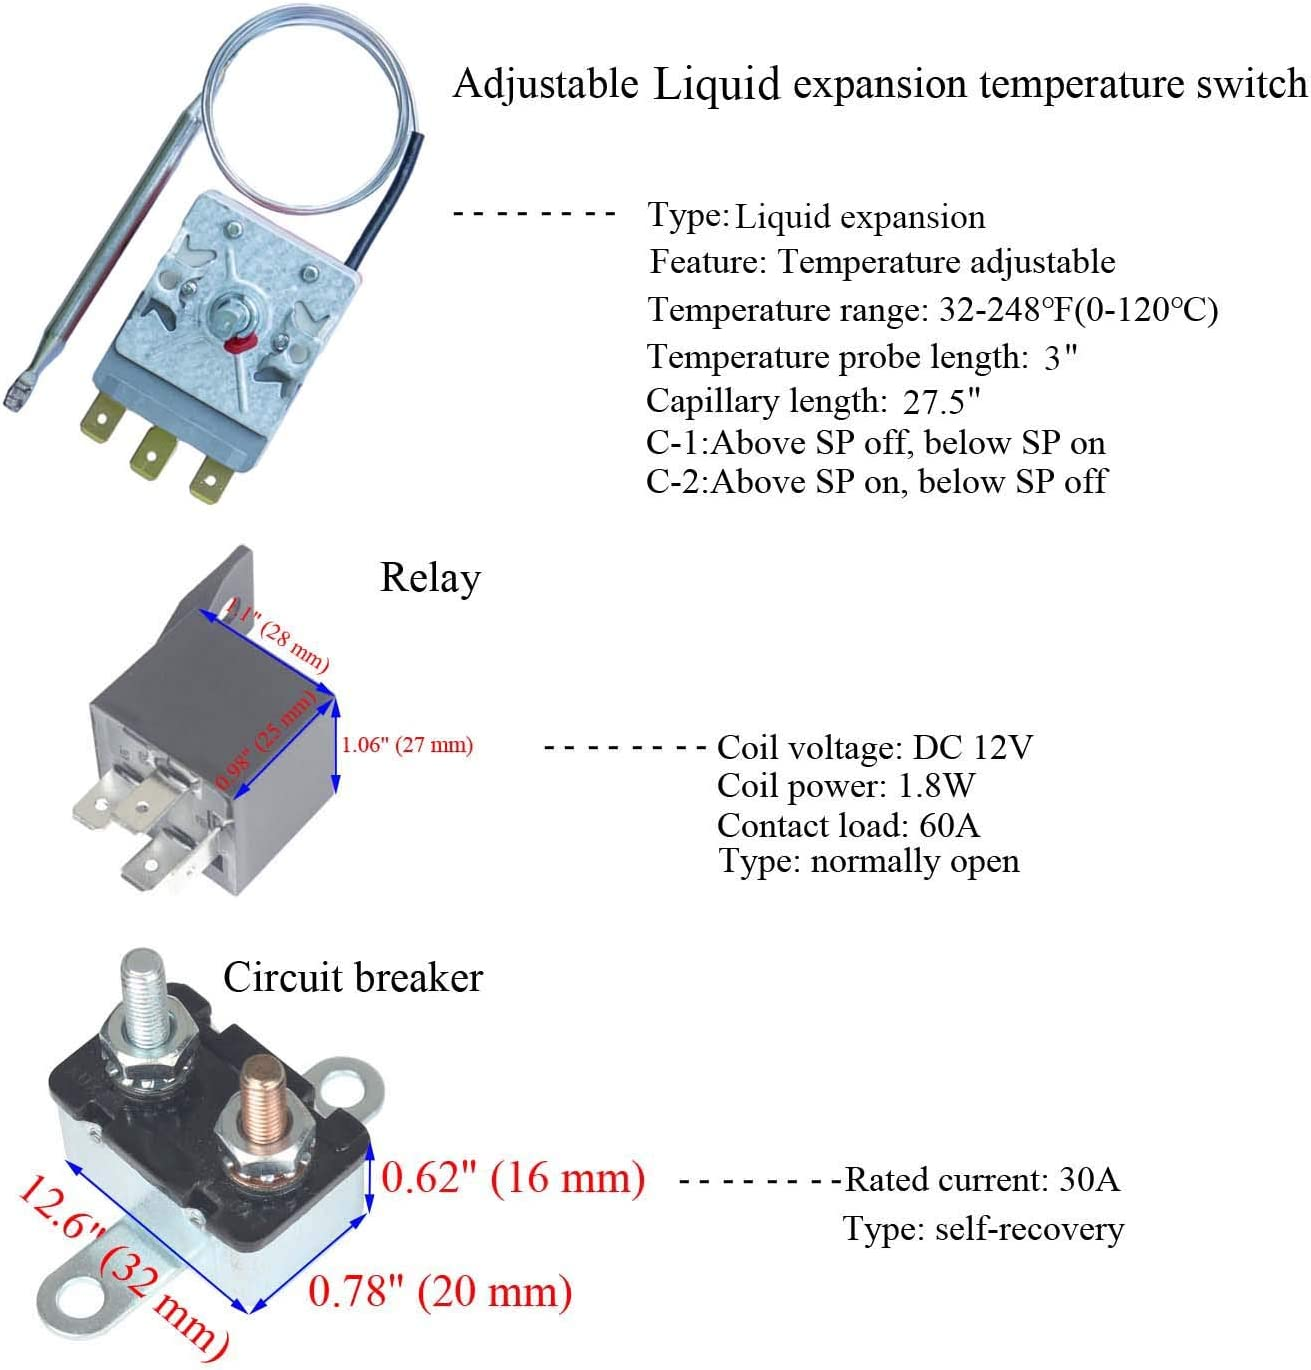 Amazon.com: LITROK Adjustable Electric Fan Thermostat Liquid Expansion Type Temperature  Control Switch with 12V 60A Relay 30A Breaker kit: Automotive | Adjustable Temp Control Relay Wiring Diagrams |  | Amazon.com